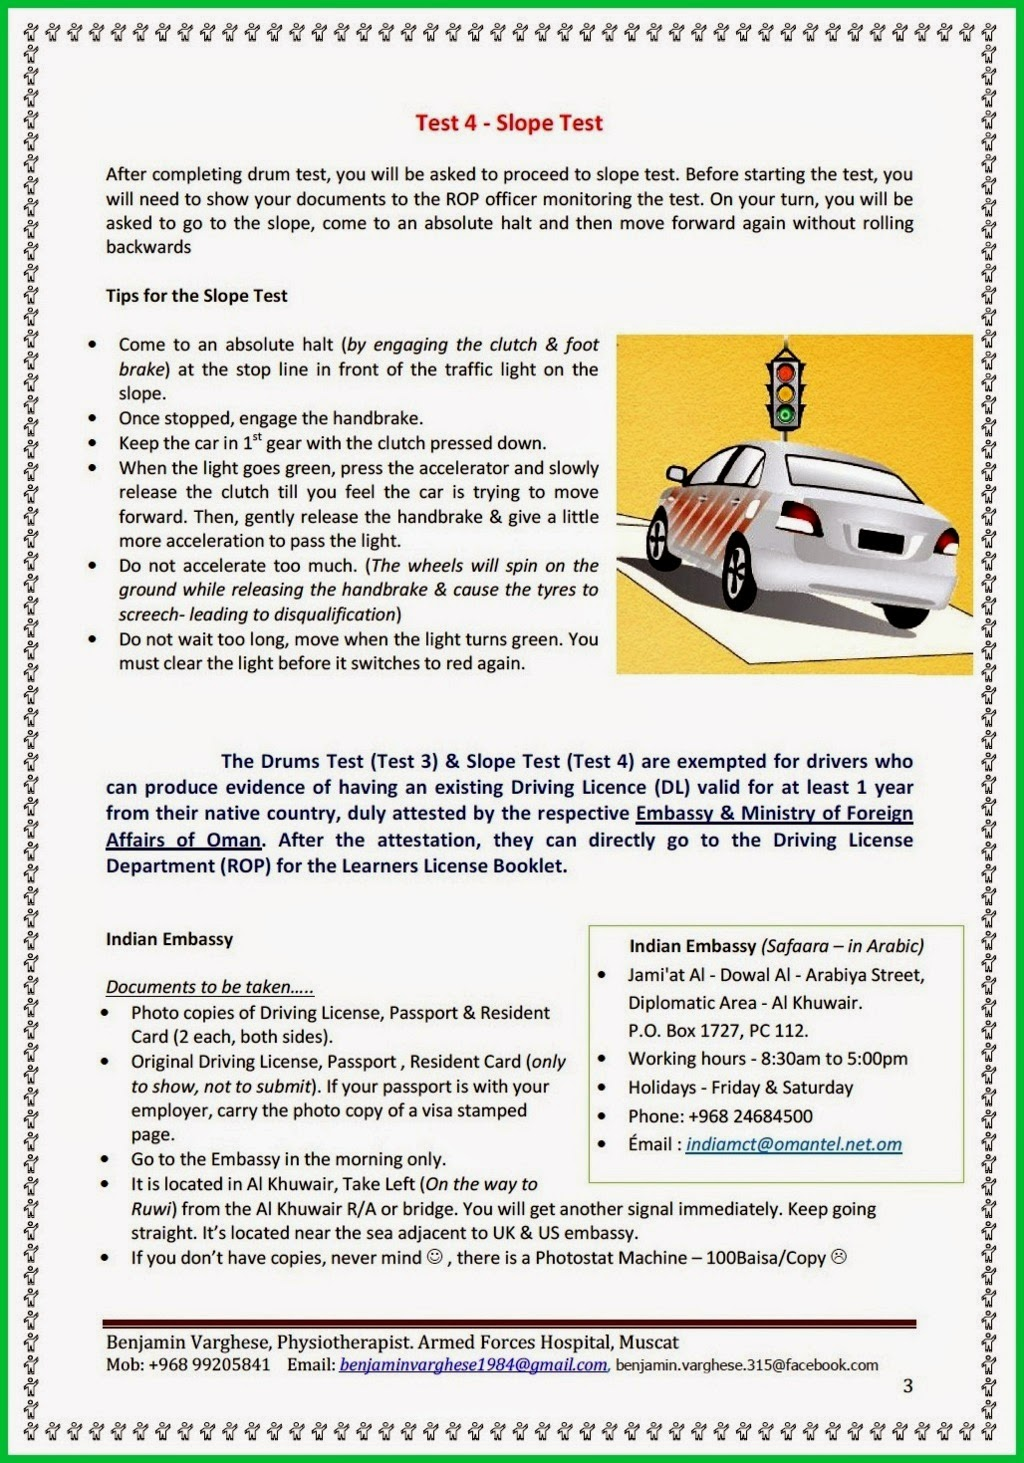 Oman Driving License Some Tips For Beginners | Autos Post